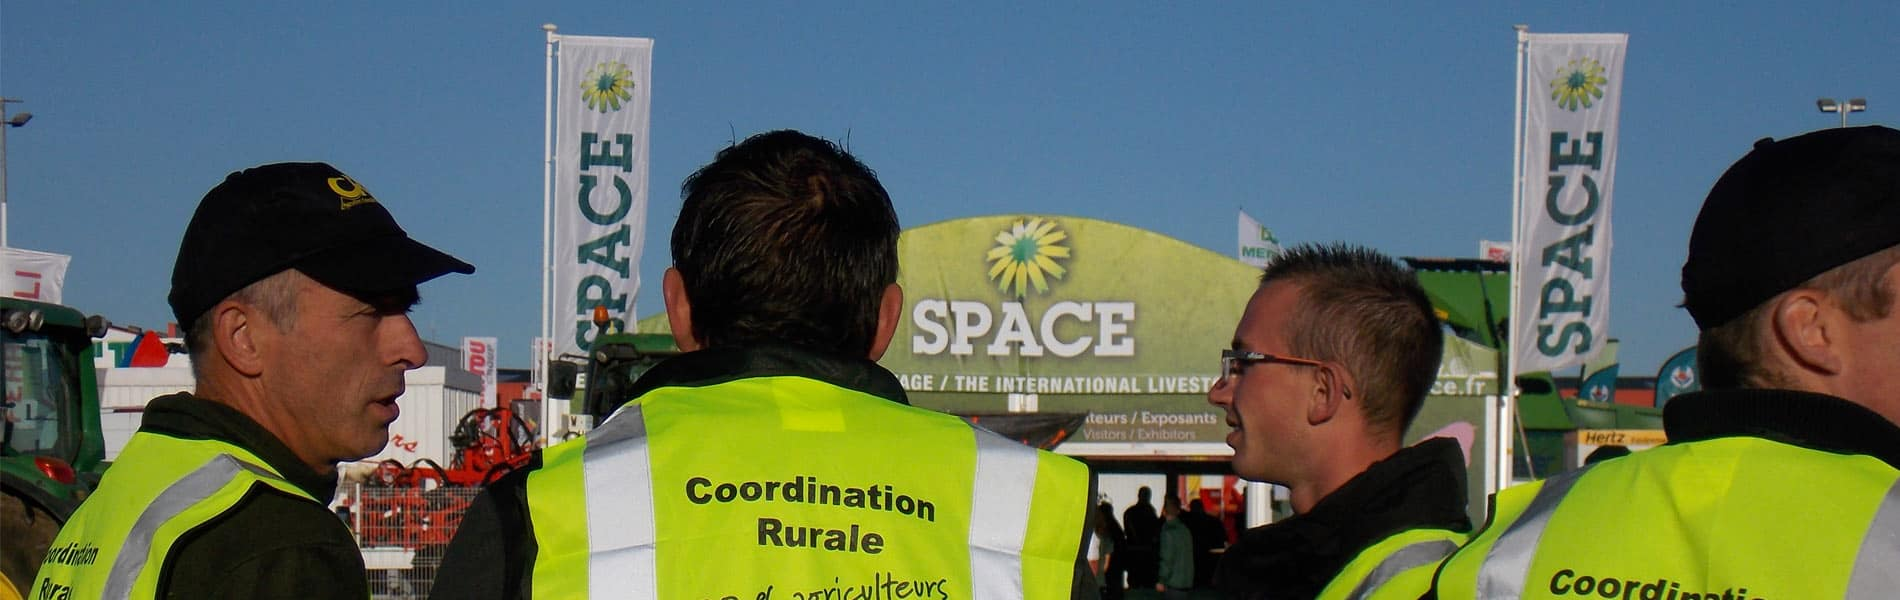 Space 2016 – Retrouvez la CR Hall 1 Stand G99